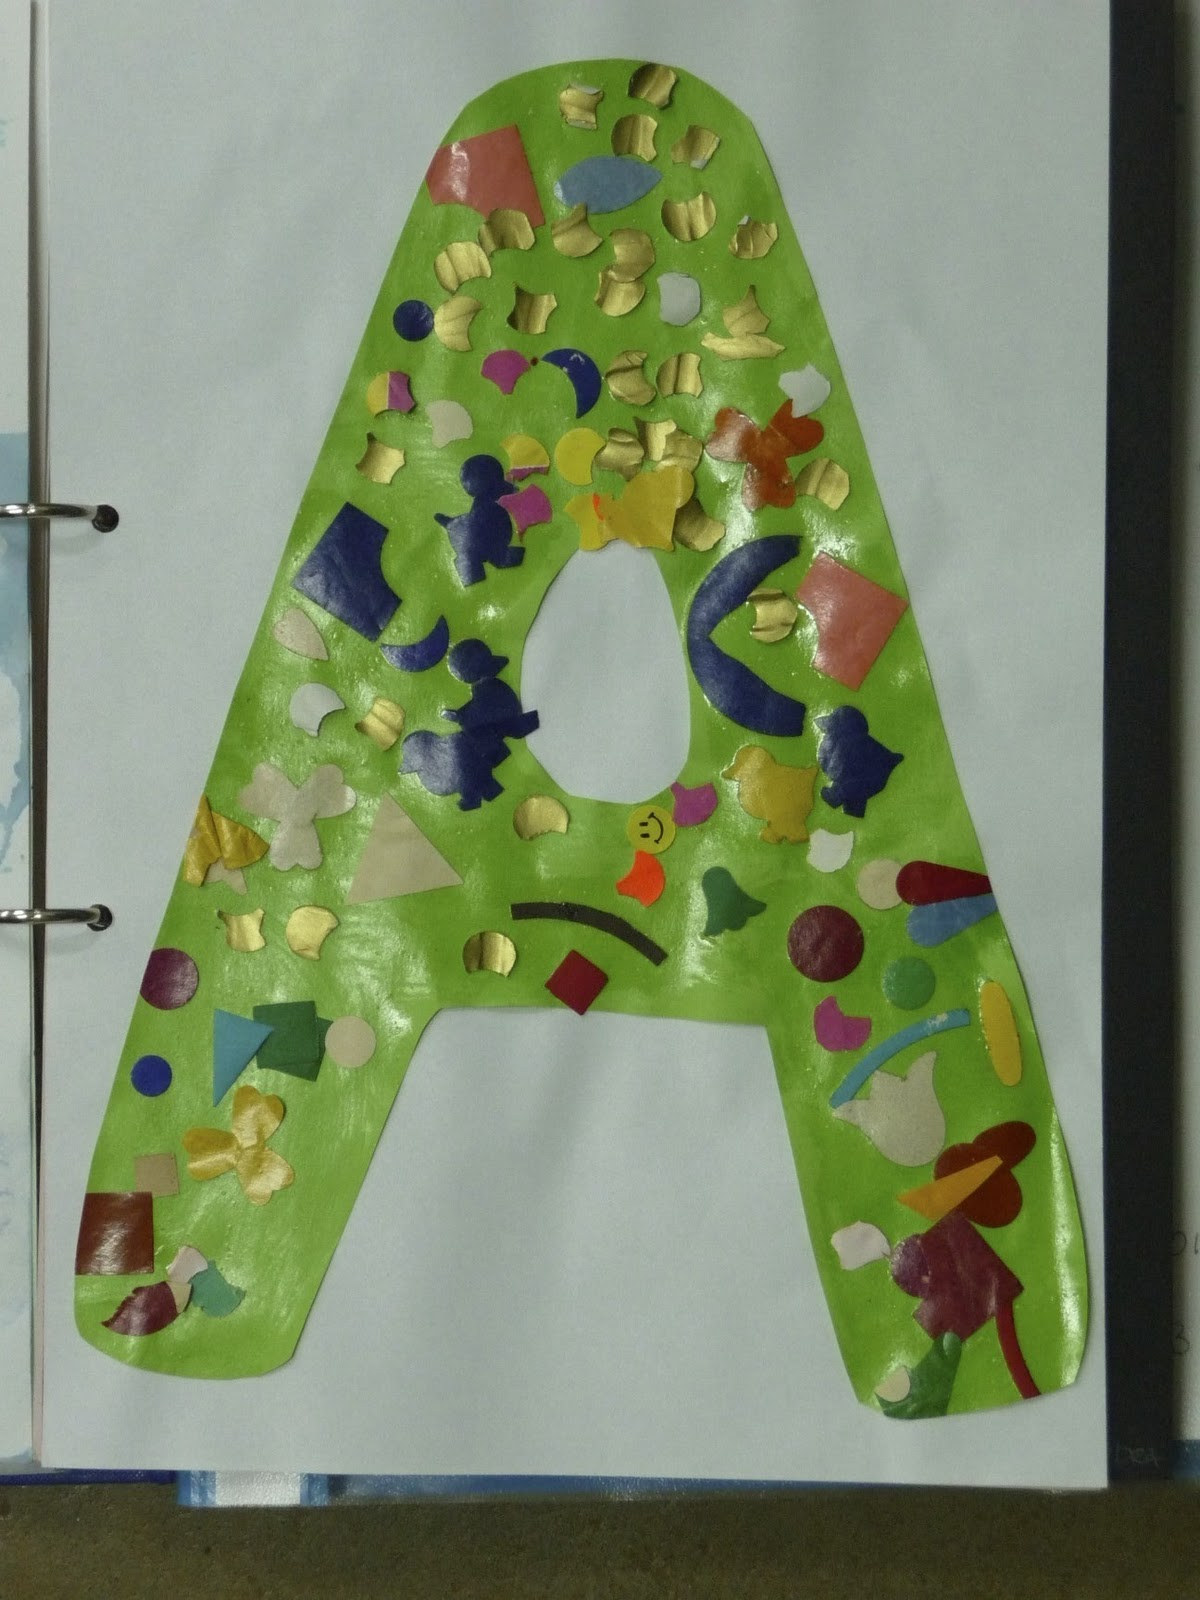 preschool show and tell letter q de mello teaching letter of our names quot show and tell quot 918